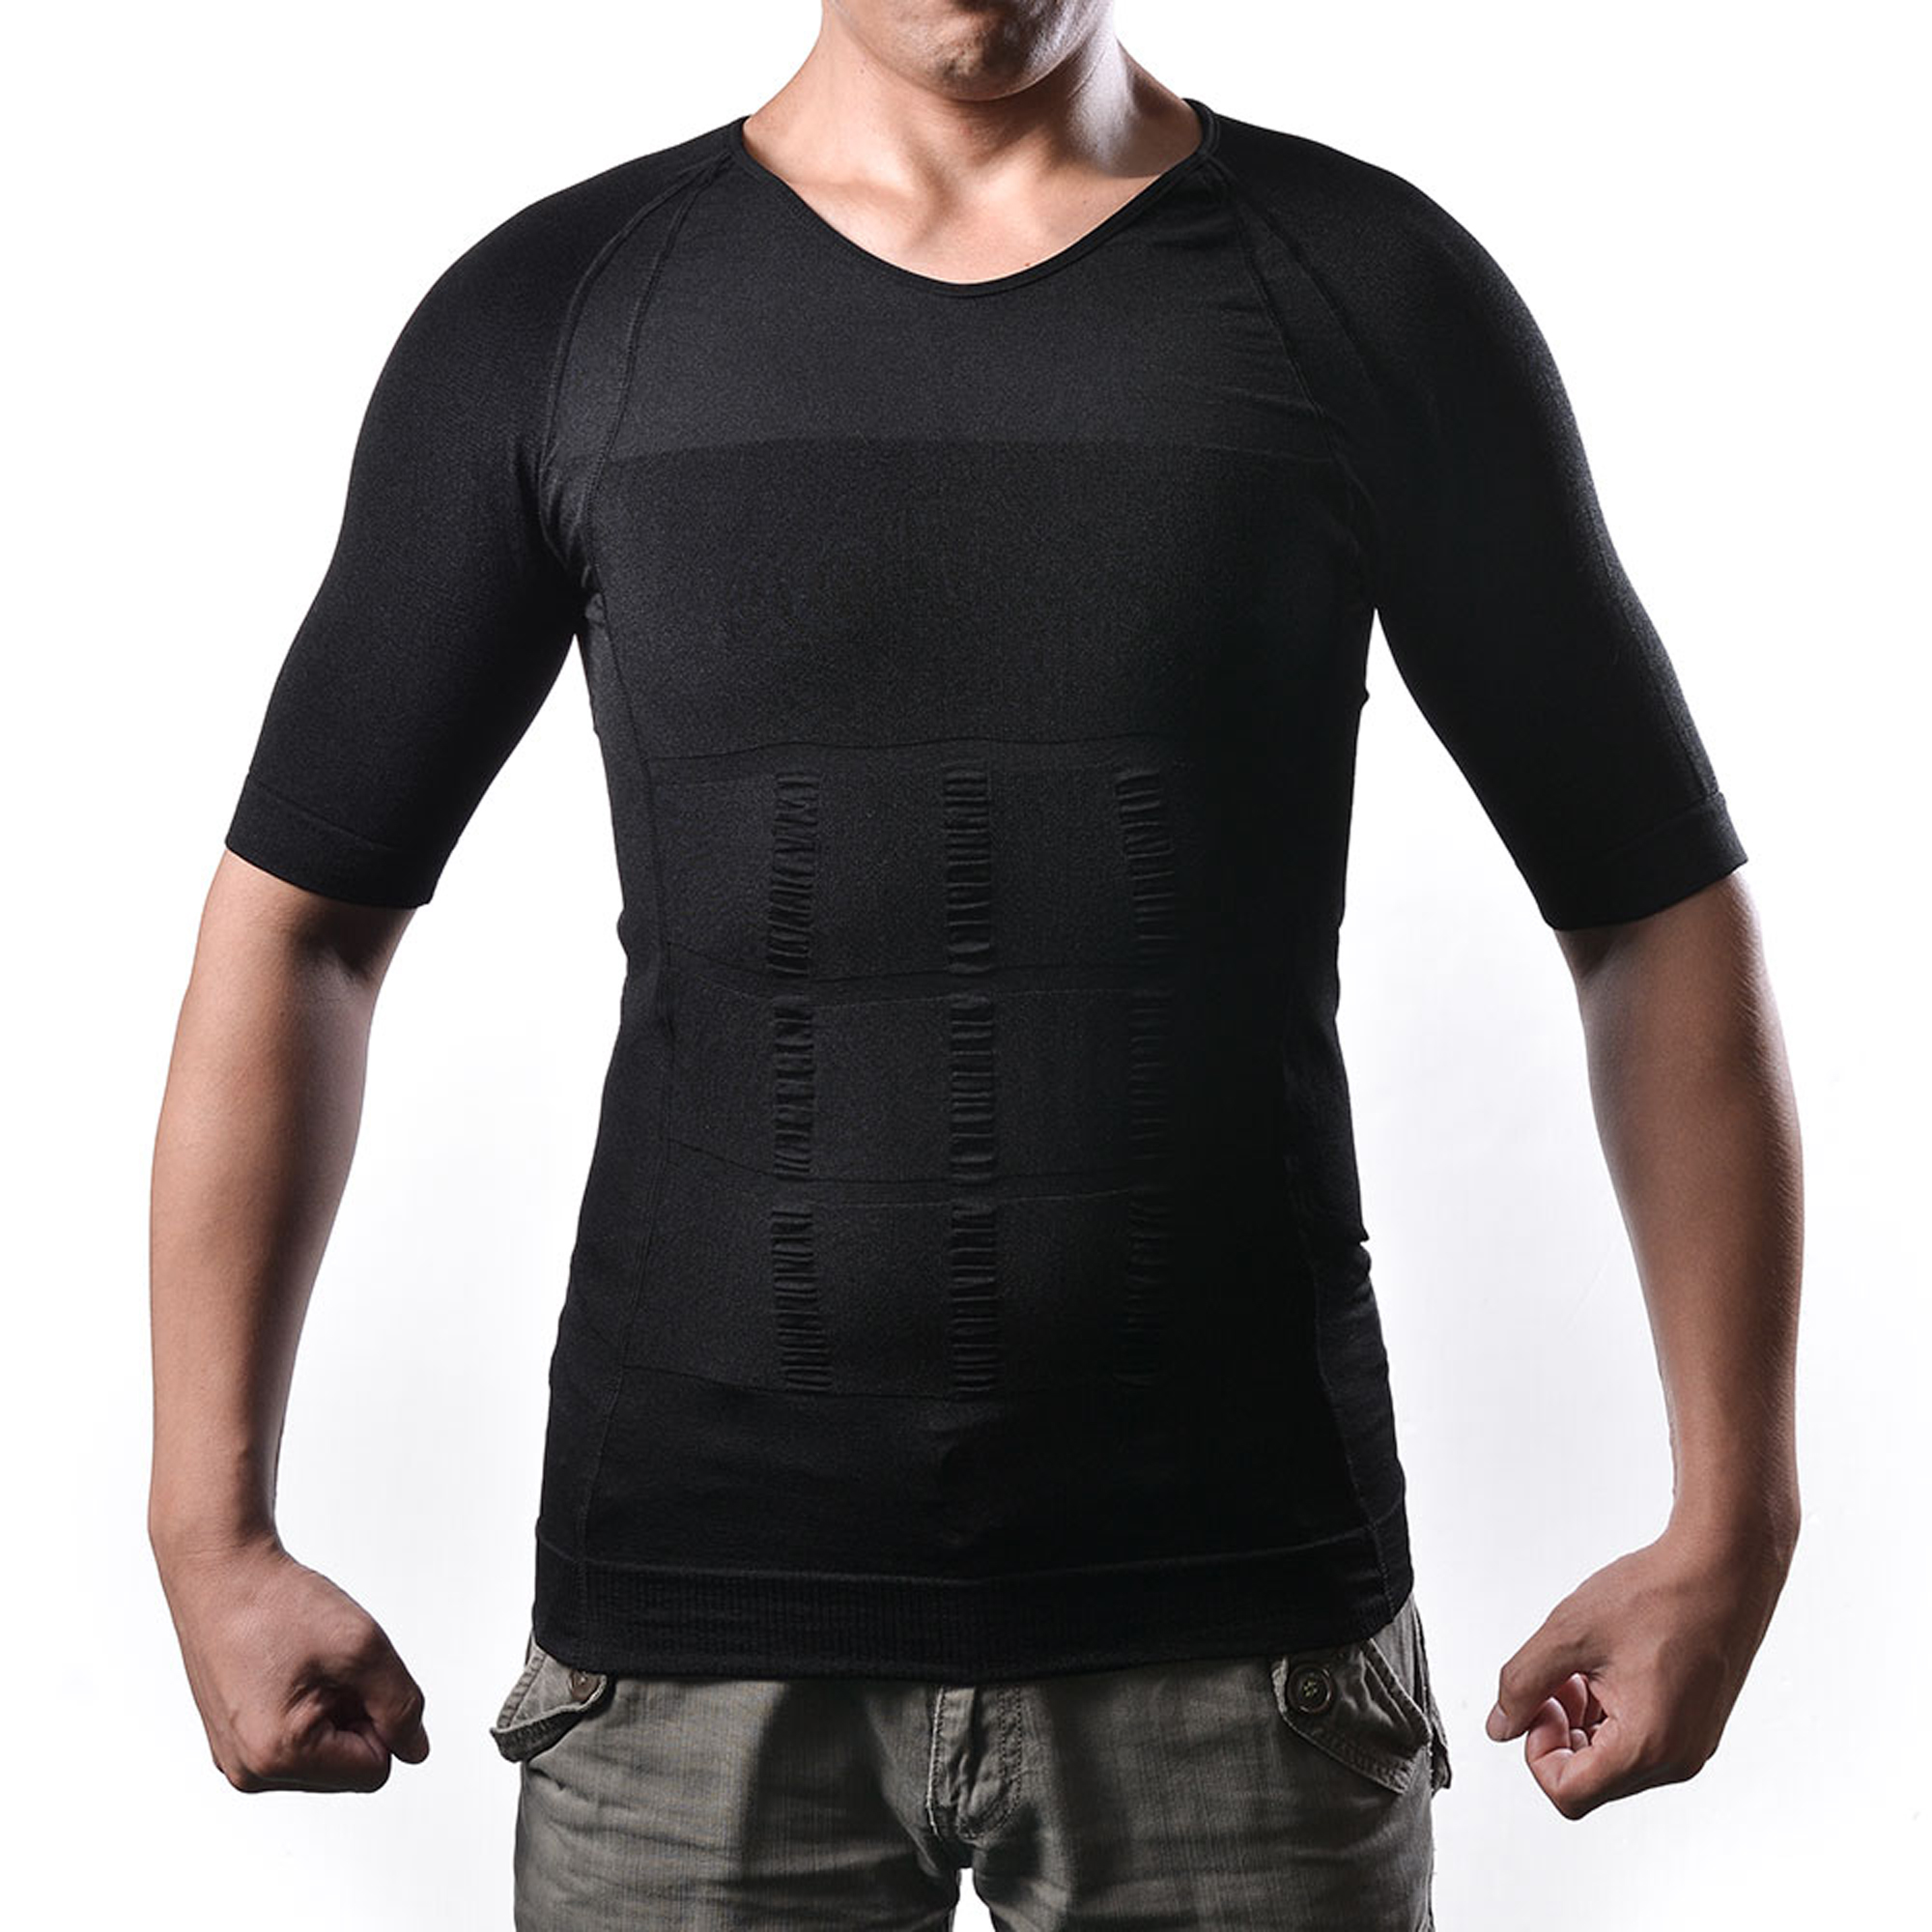 Men's Body Shaper For Men Slimming Shirt Tummy Waist lose Weight Compression Shirt Size: M